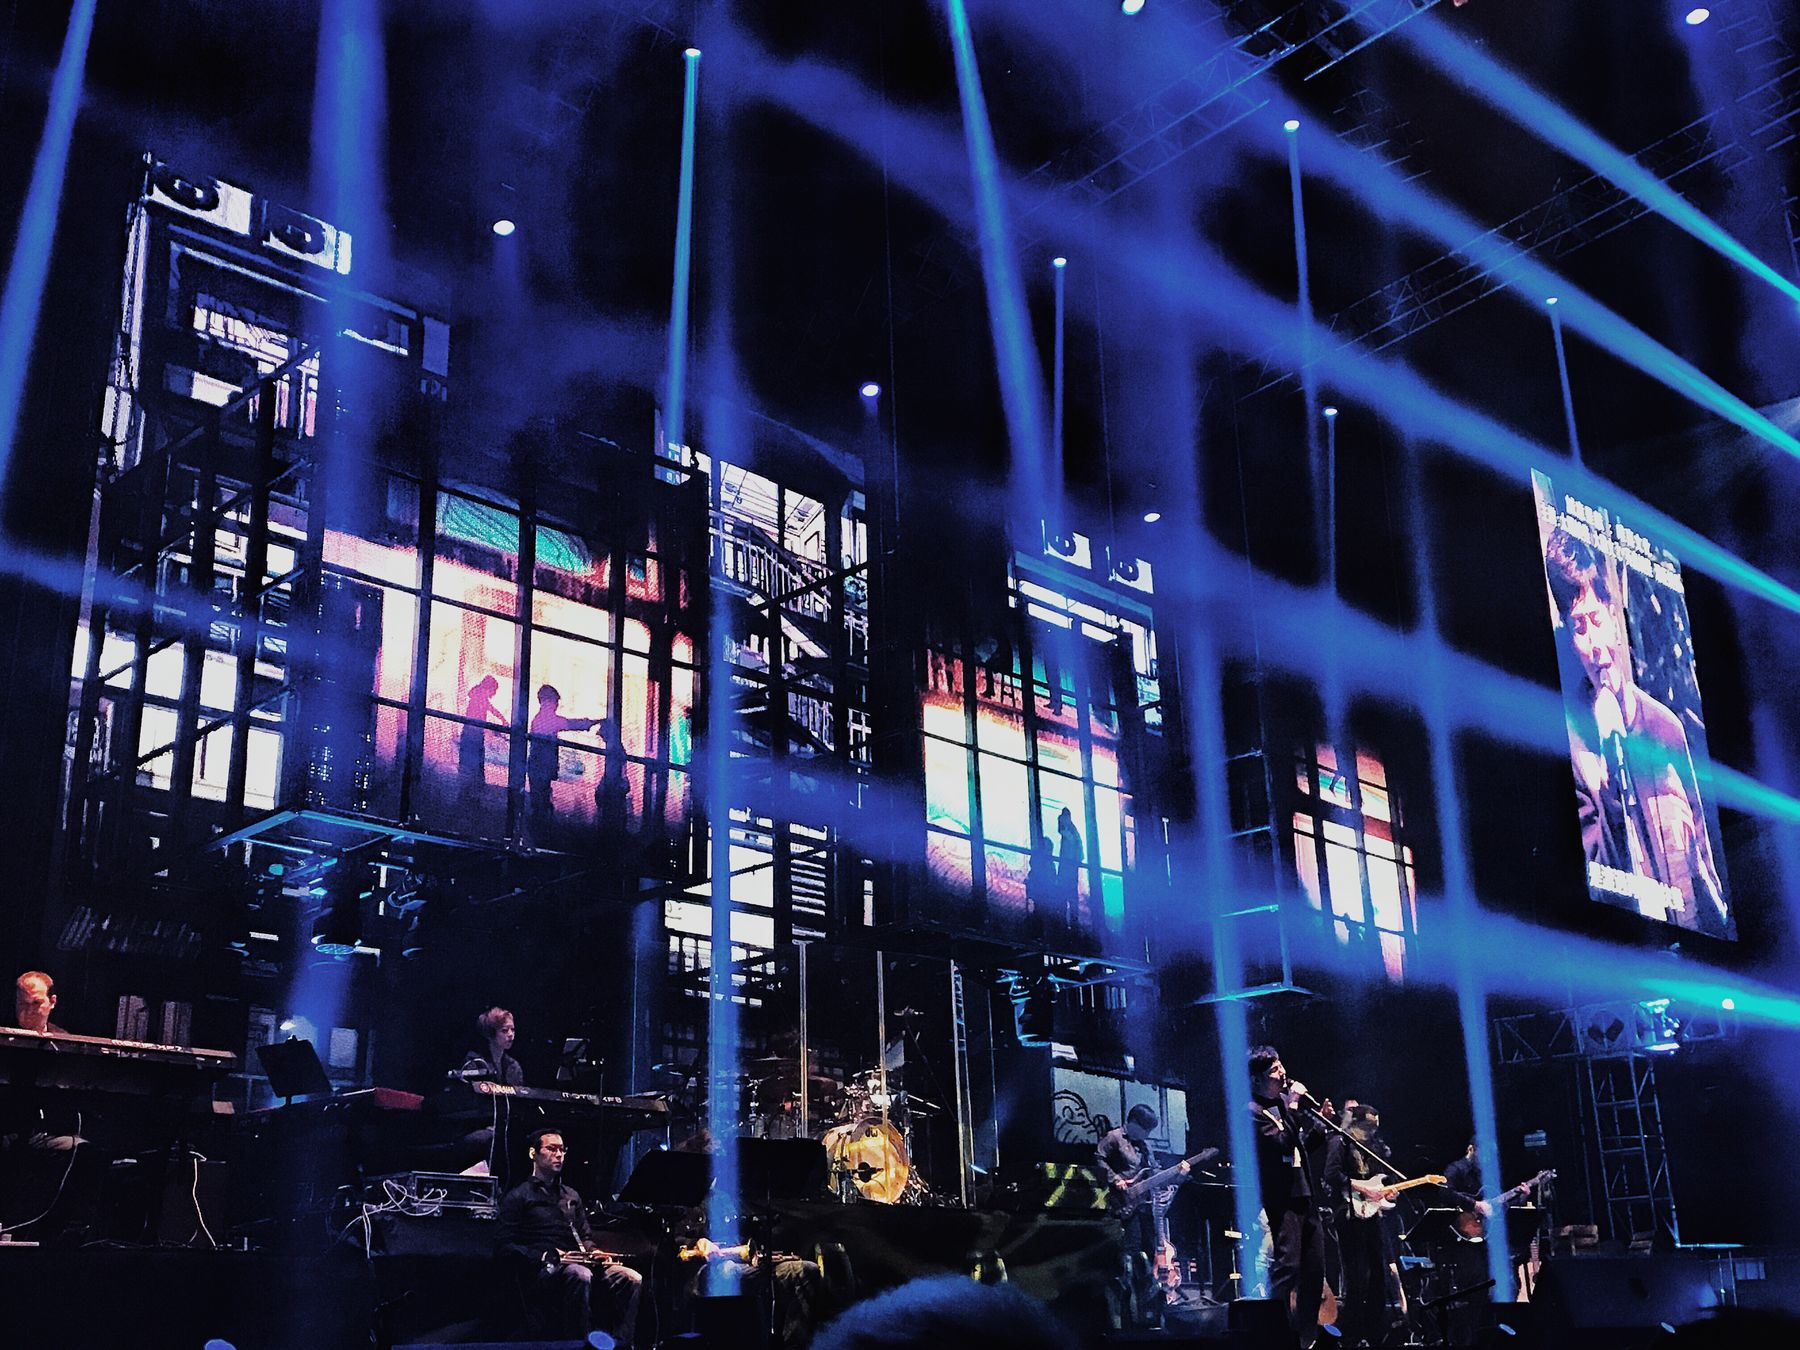 Music Night Men Built Structure Lifestyles Real People Large Group Of People City Indoors  Occupation Architecture People Hong Kong Coliseum Nightlife Performance Illuminated